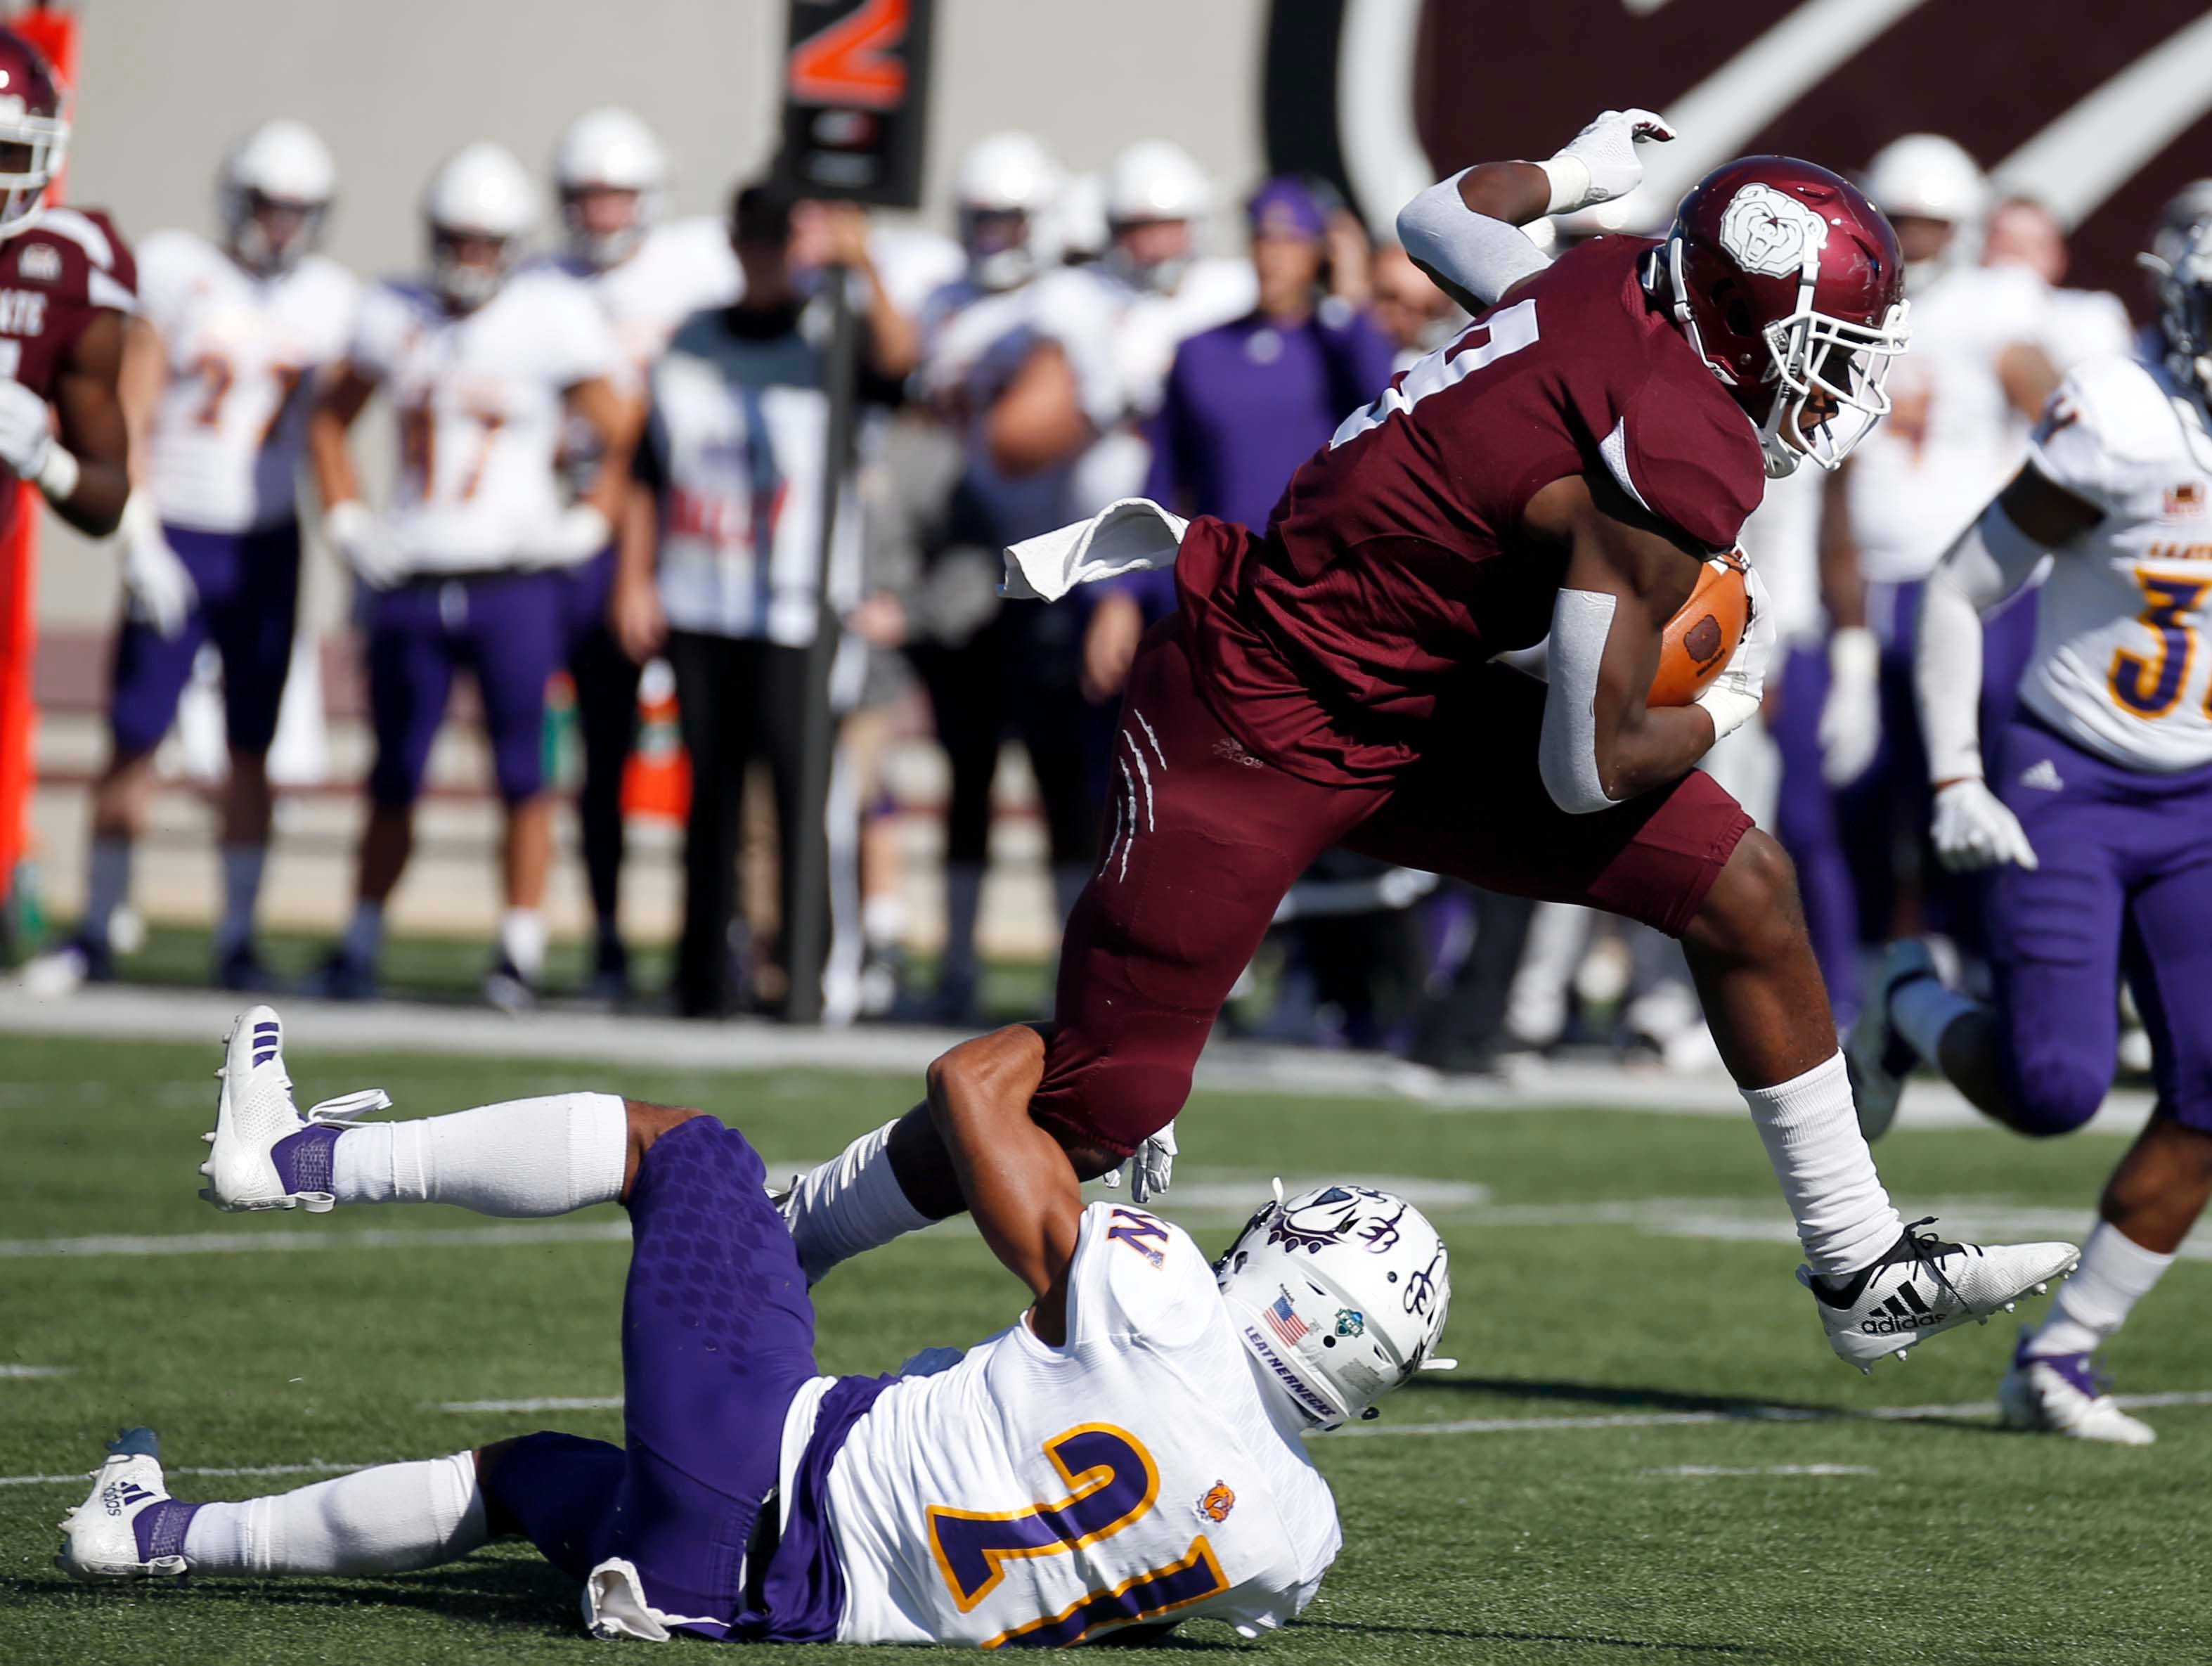 Missouri State's Jordan Murray breaks the last tackle against Western Illinois' Zach Muniz before scoring a touchdown at Plaster Field in Springfield on Oct. 20, 2018.